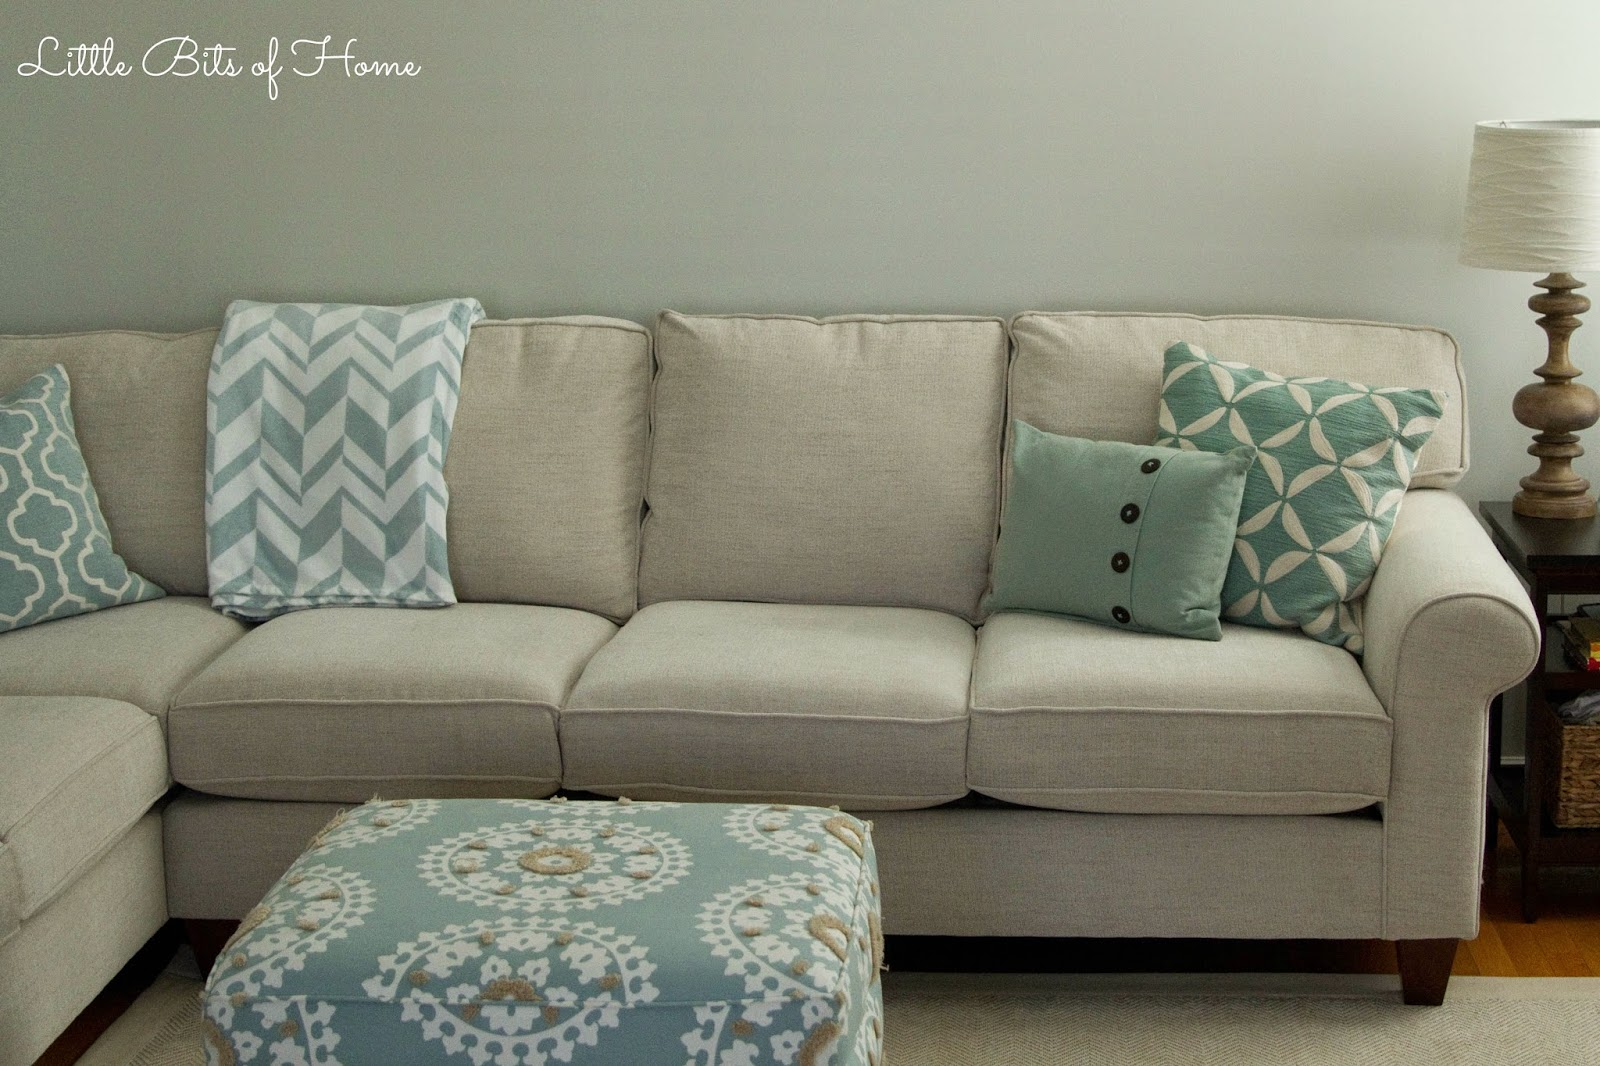 leather sofa sale raleigh nc english arm craigslist little bits of home living room makeover couch redo